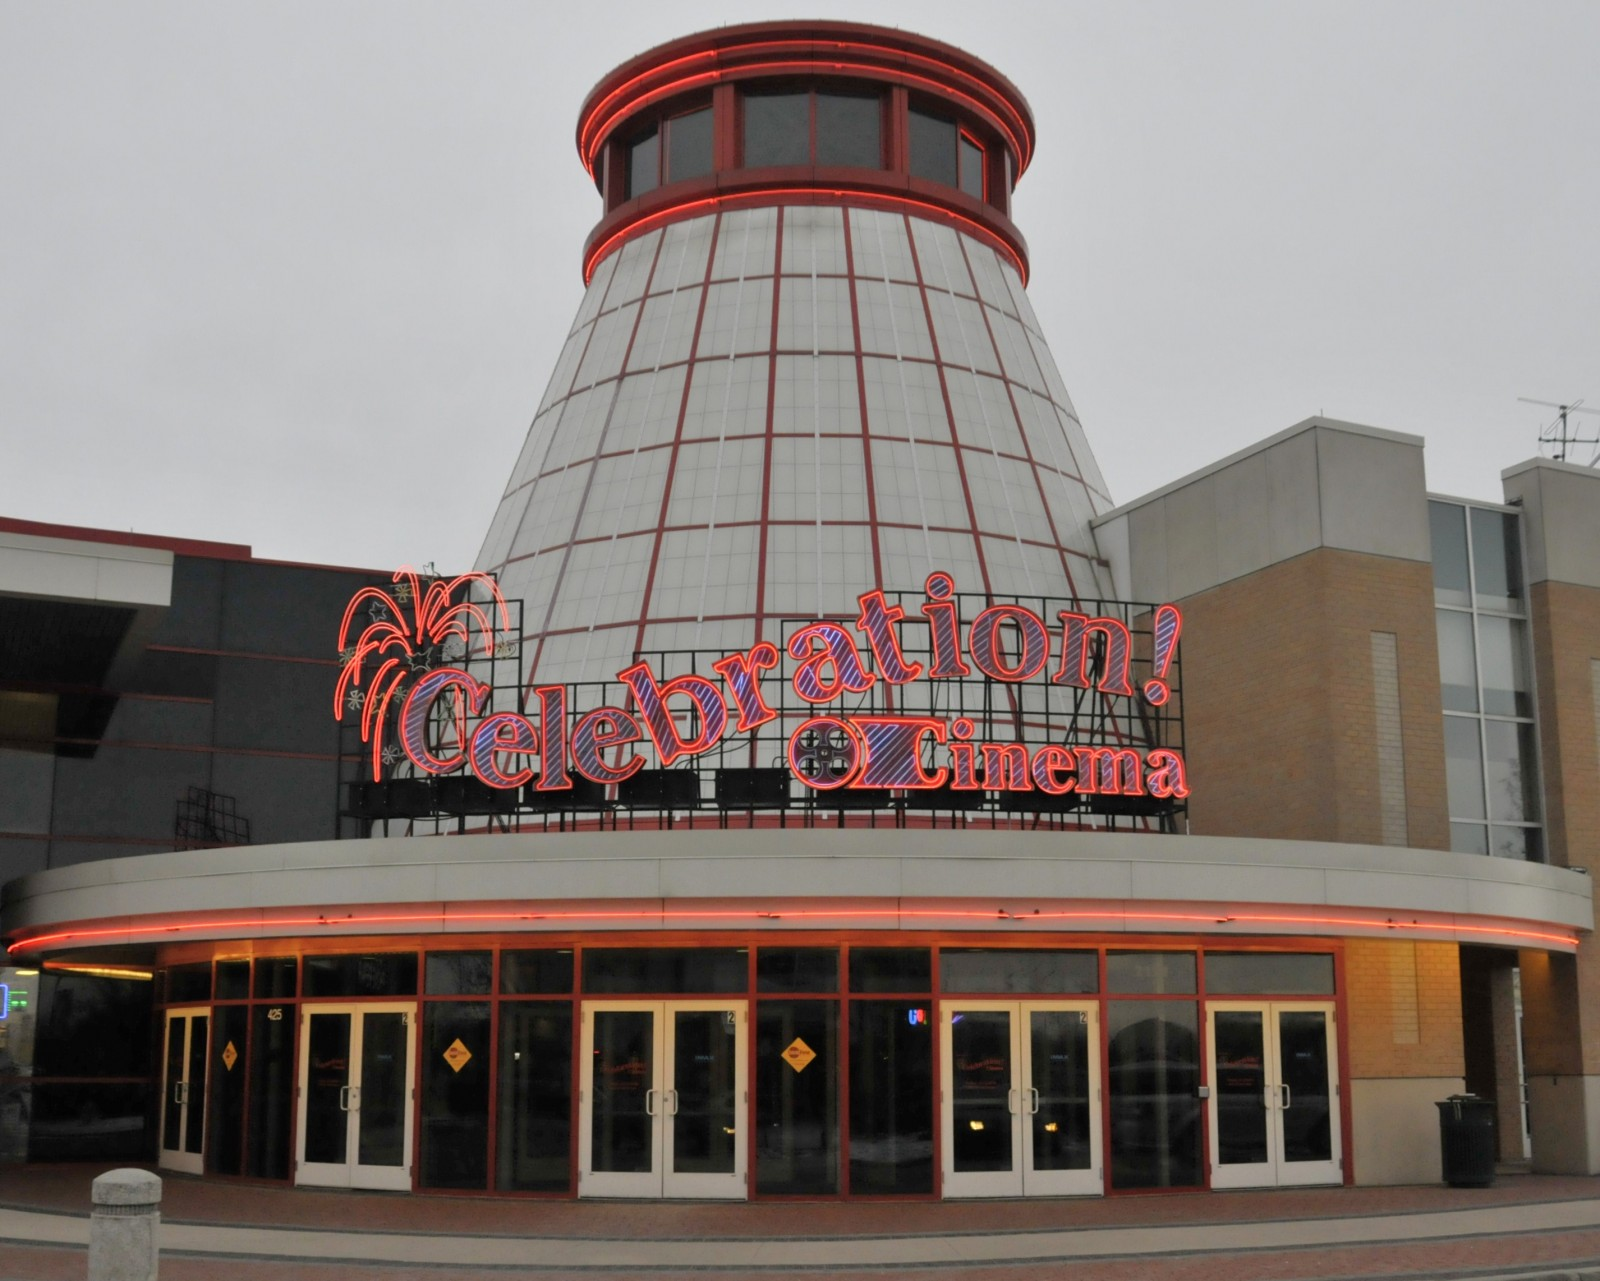 062 - Celebration Cinema Grand Rapids North Imax